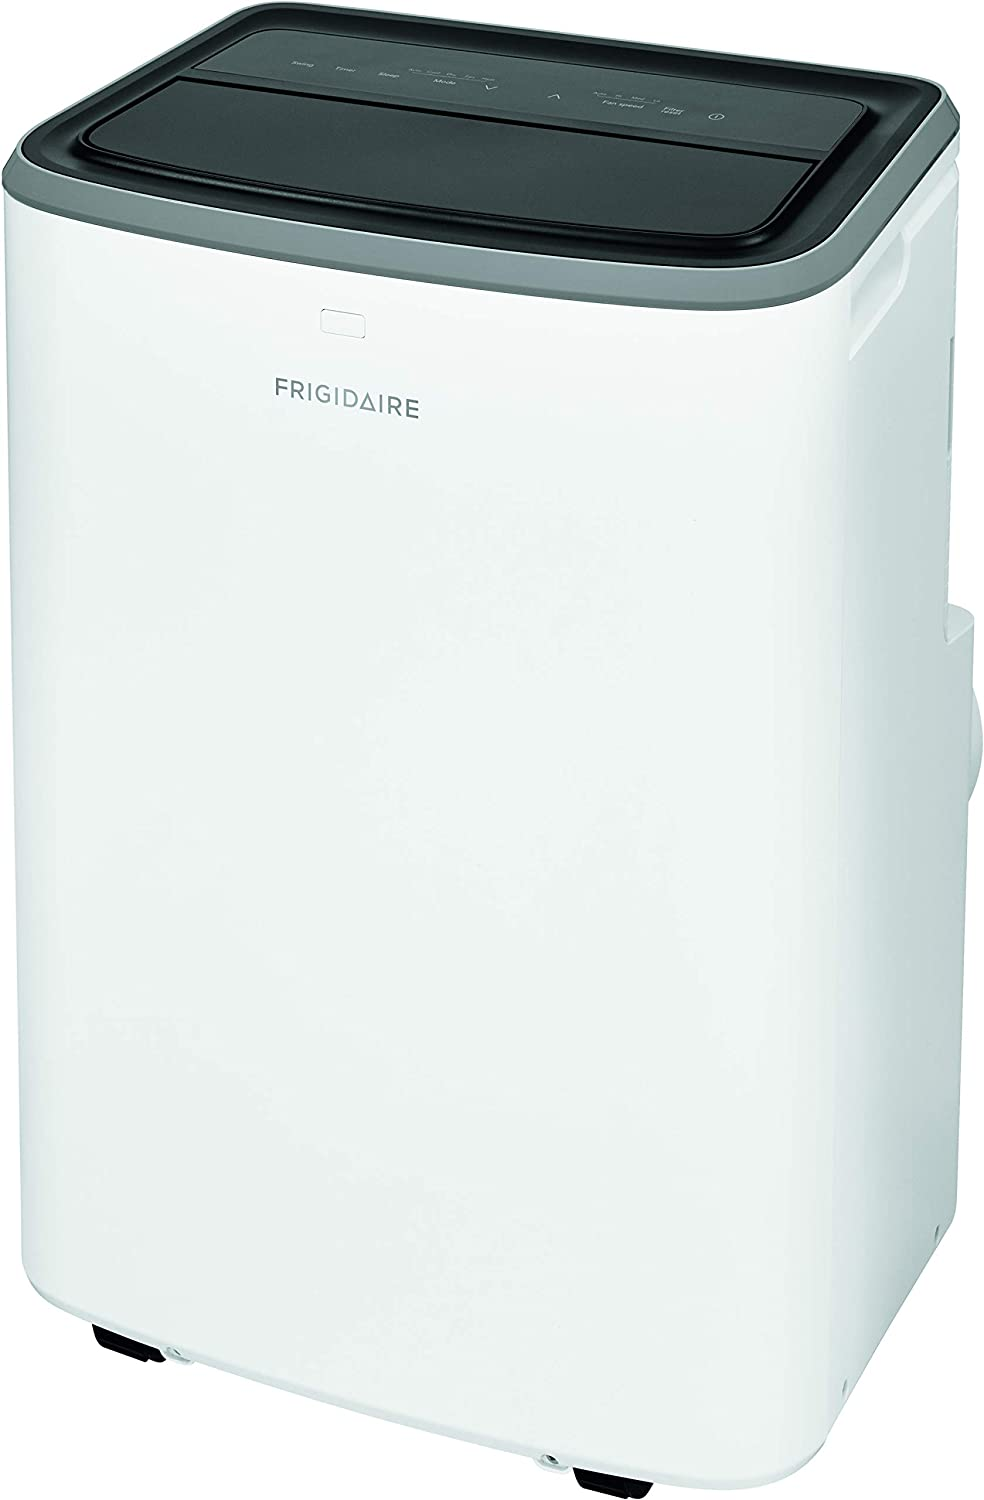 Frigidaire FHPH132AB1 Portable Air Conditioner with Heat, White